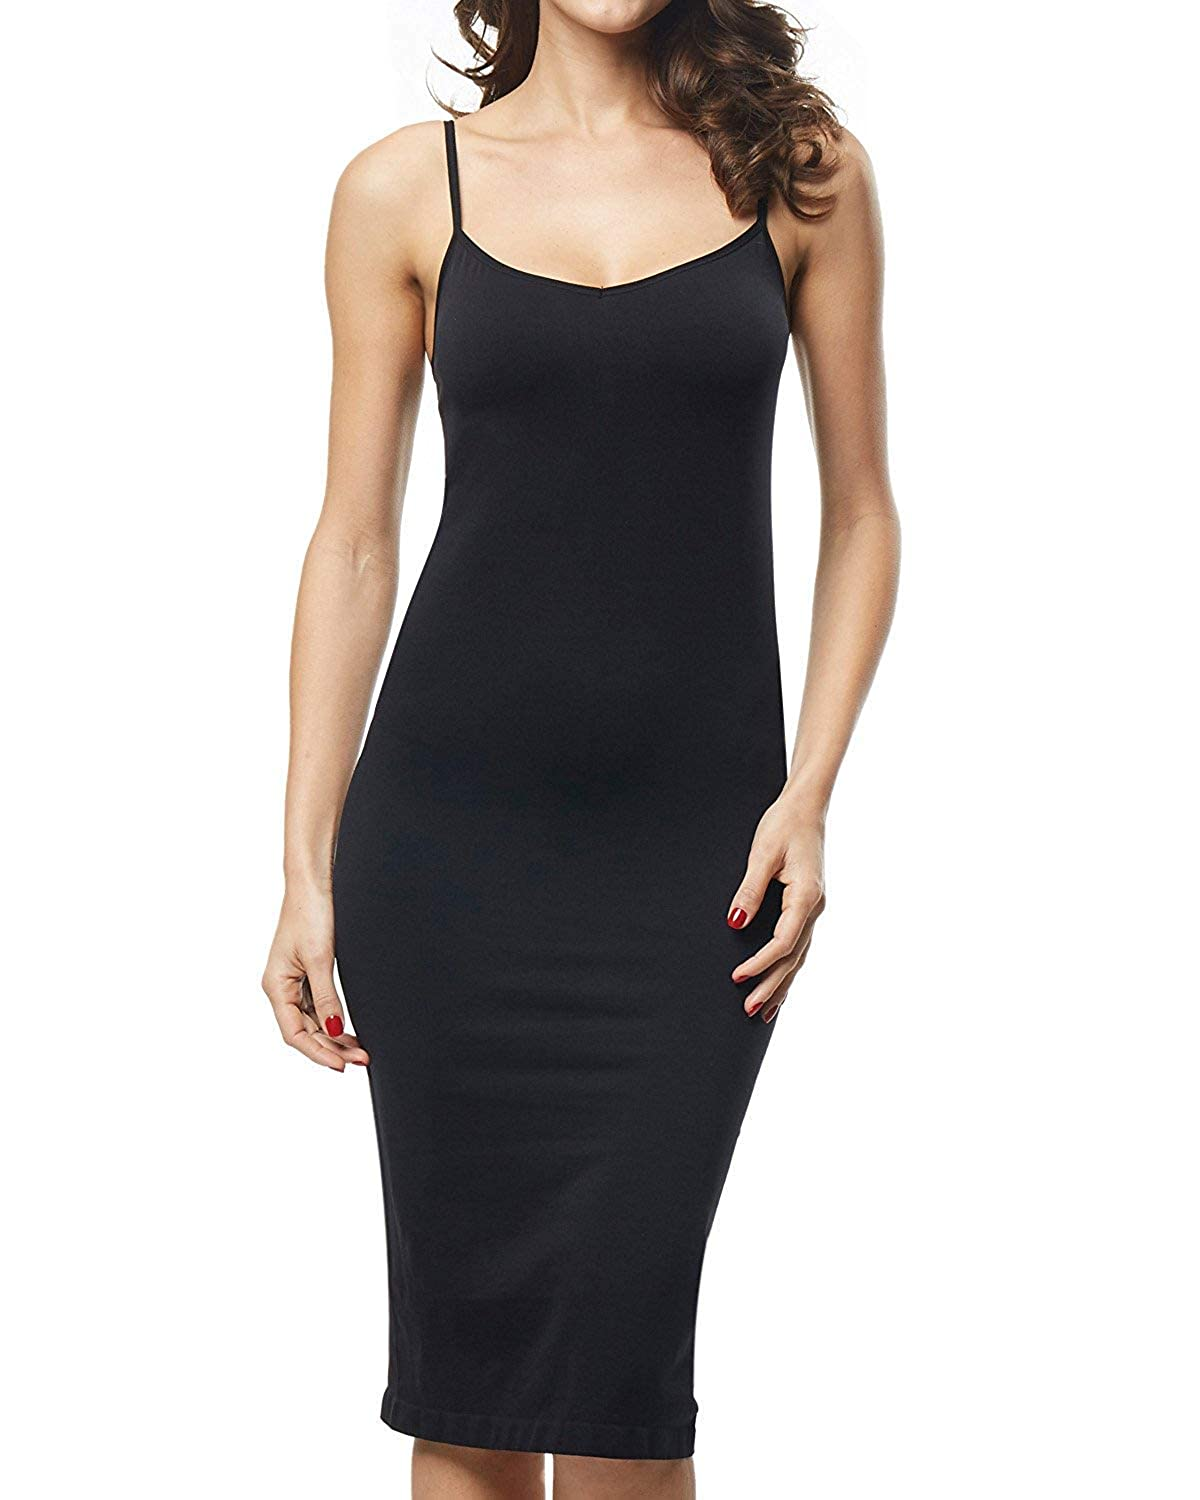 7041d3af870 Top 10 wholesale Full Sexy Dress - Chinabrands.com